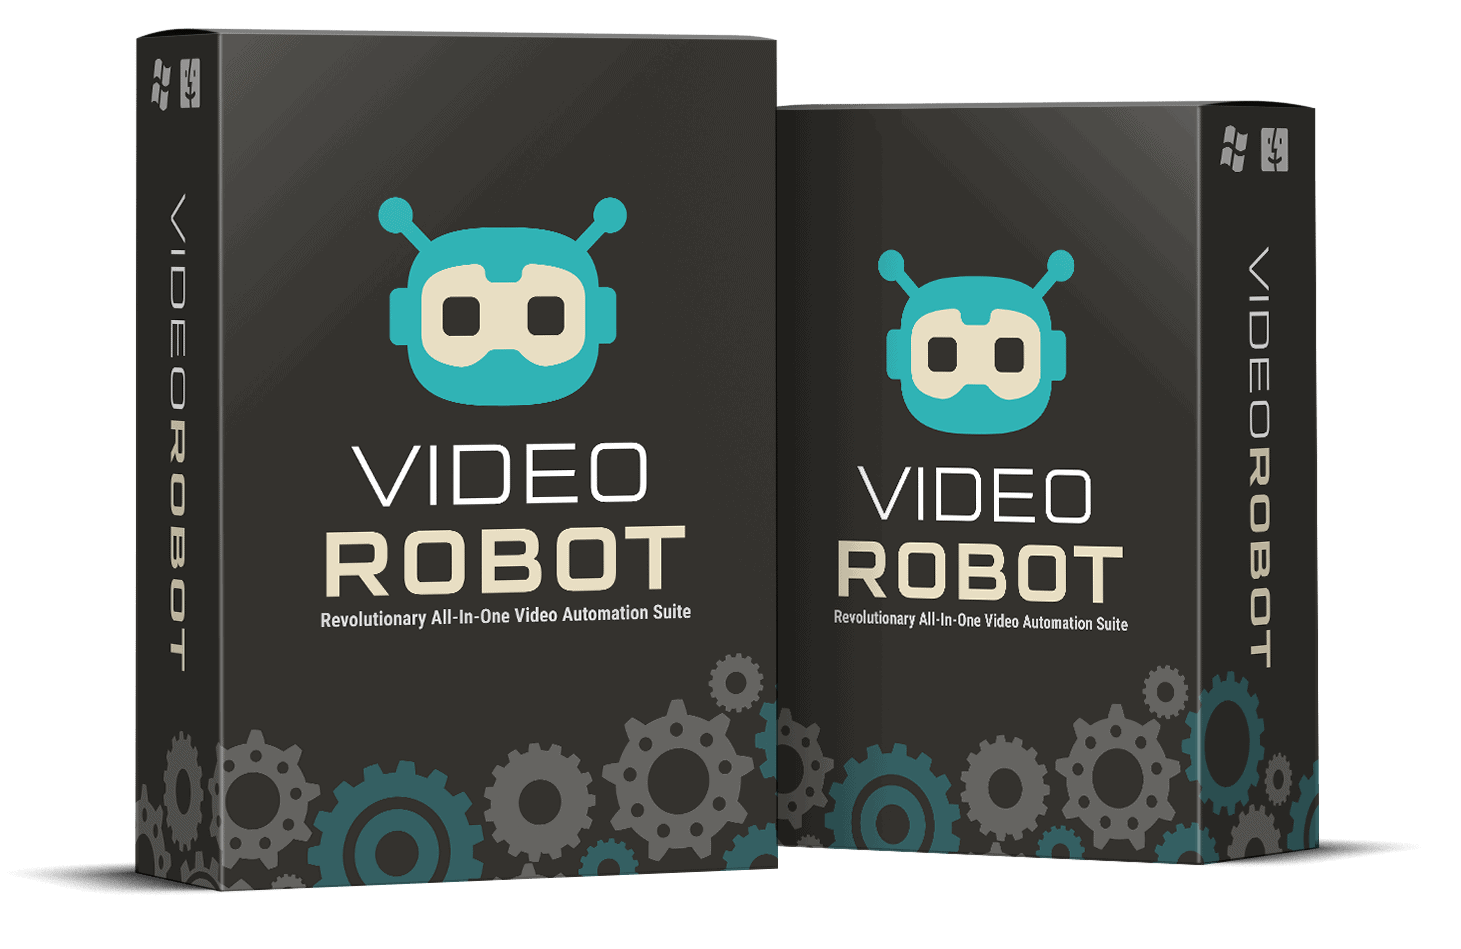 The Future Of Videos - the All New 'Next Generation' Video Robot